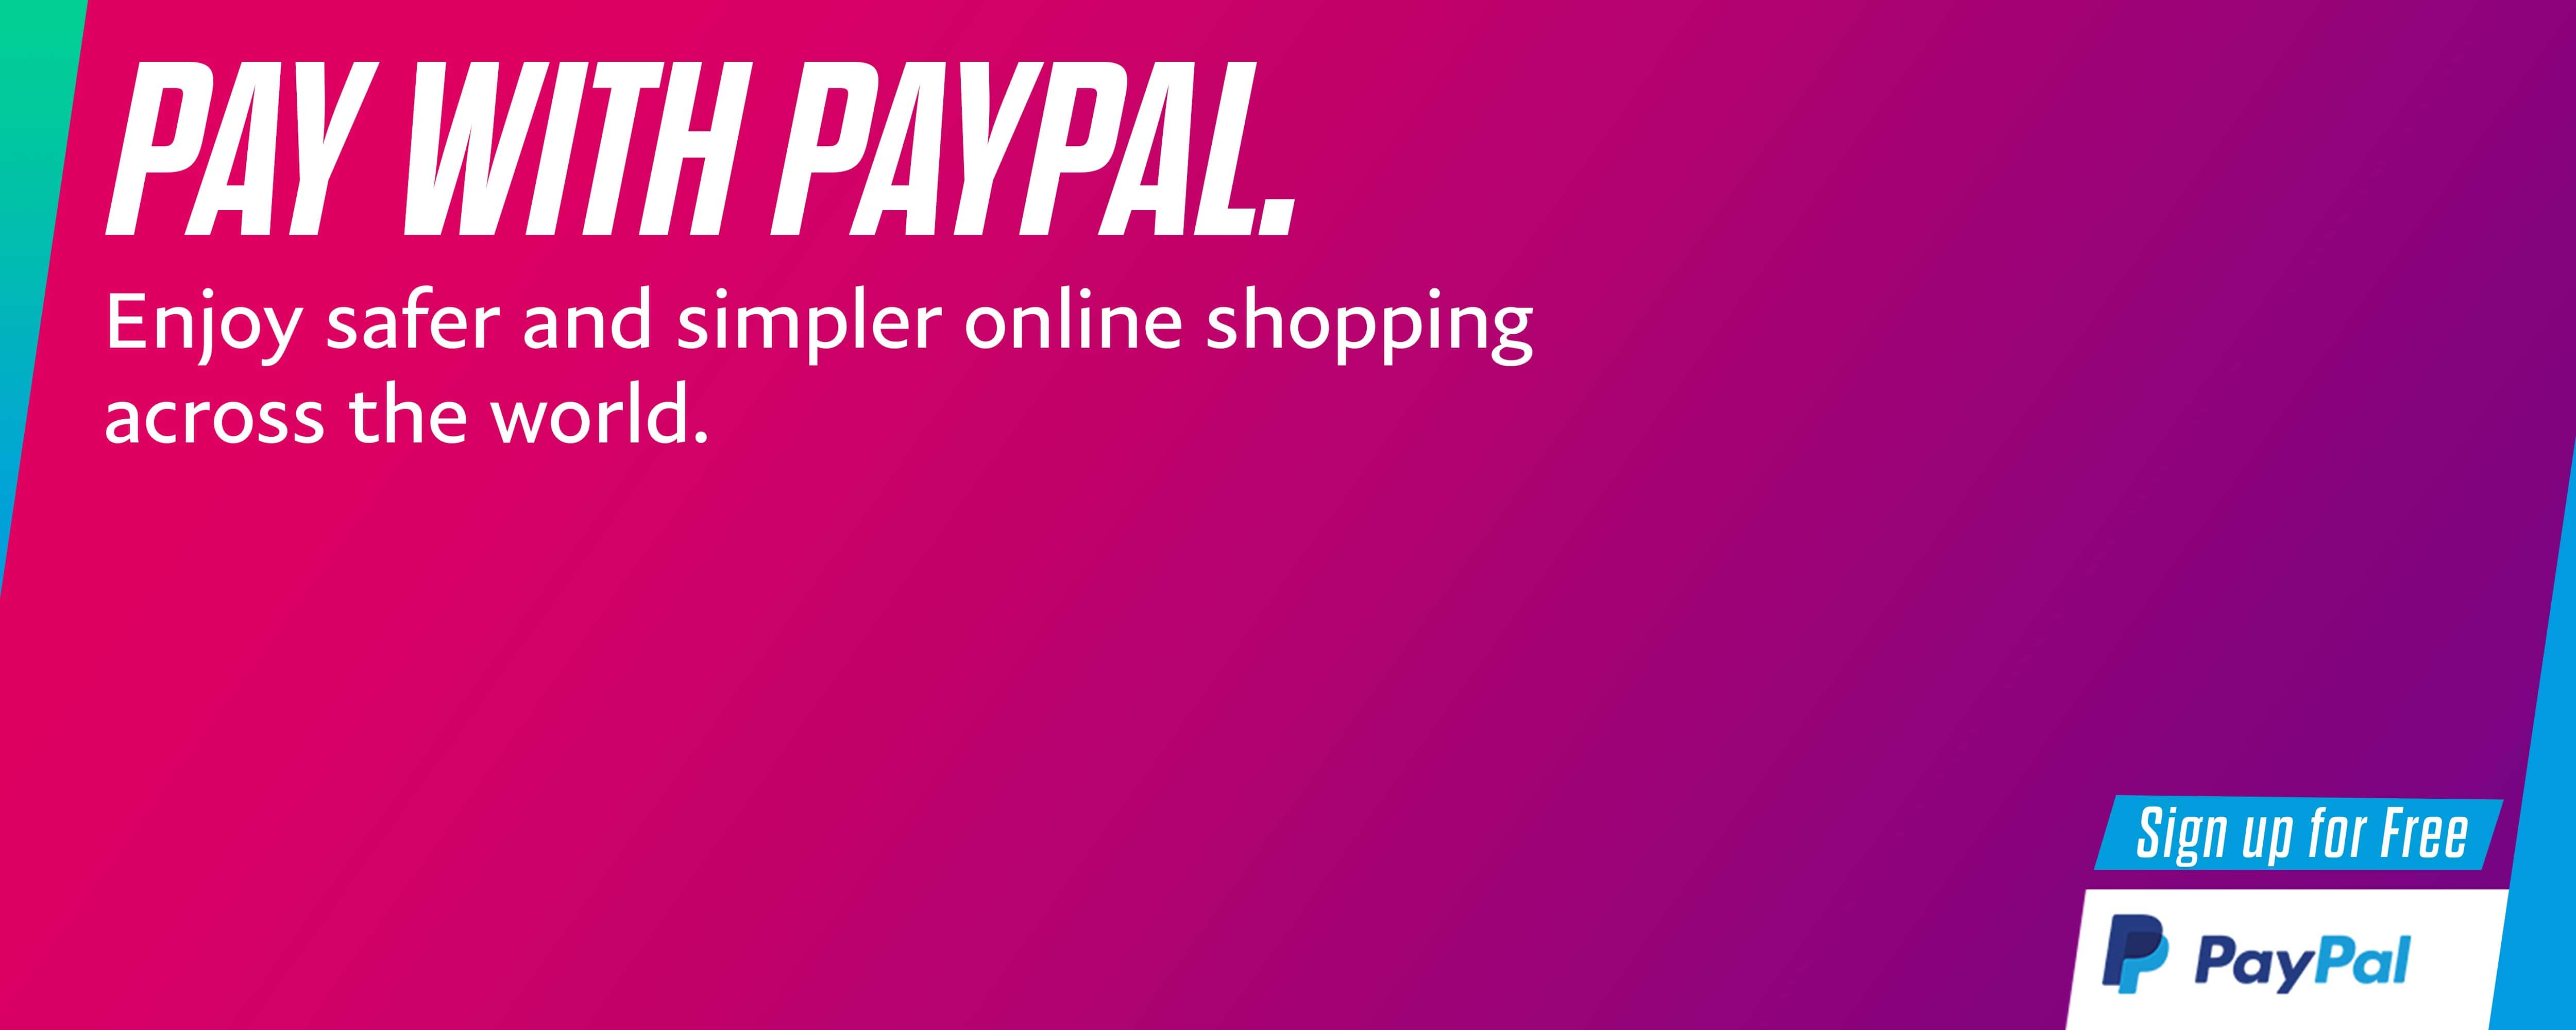 Pay With PayPal safe hai 5000x2000